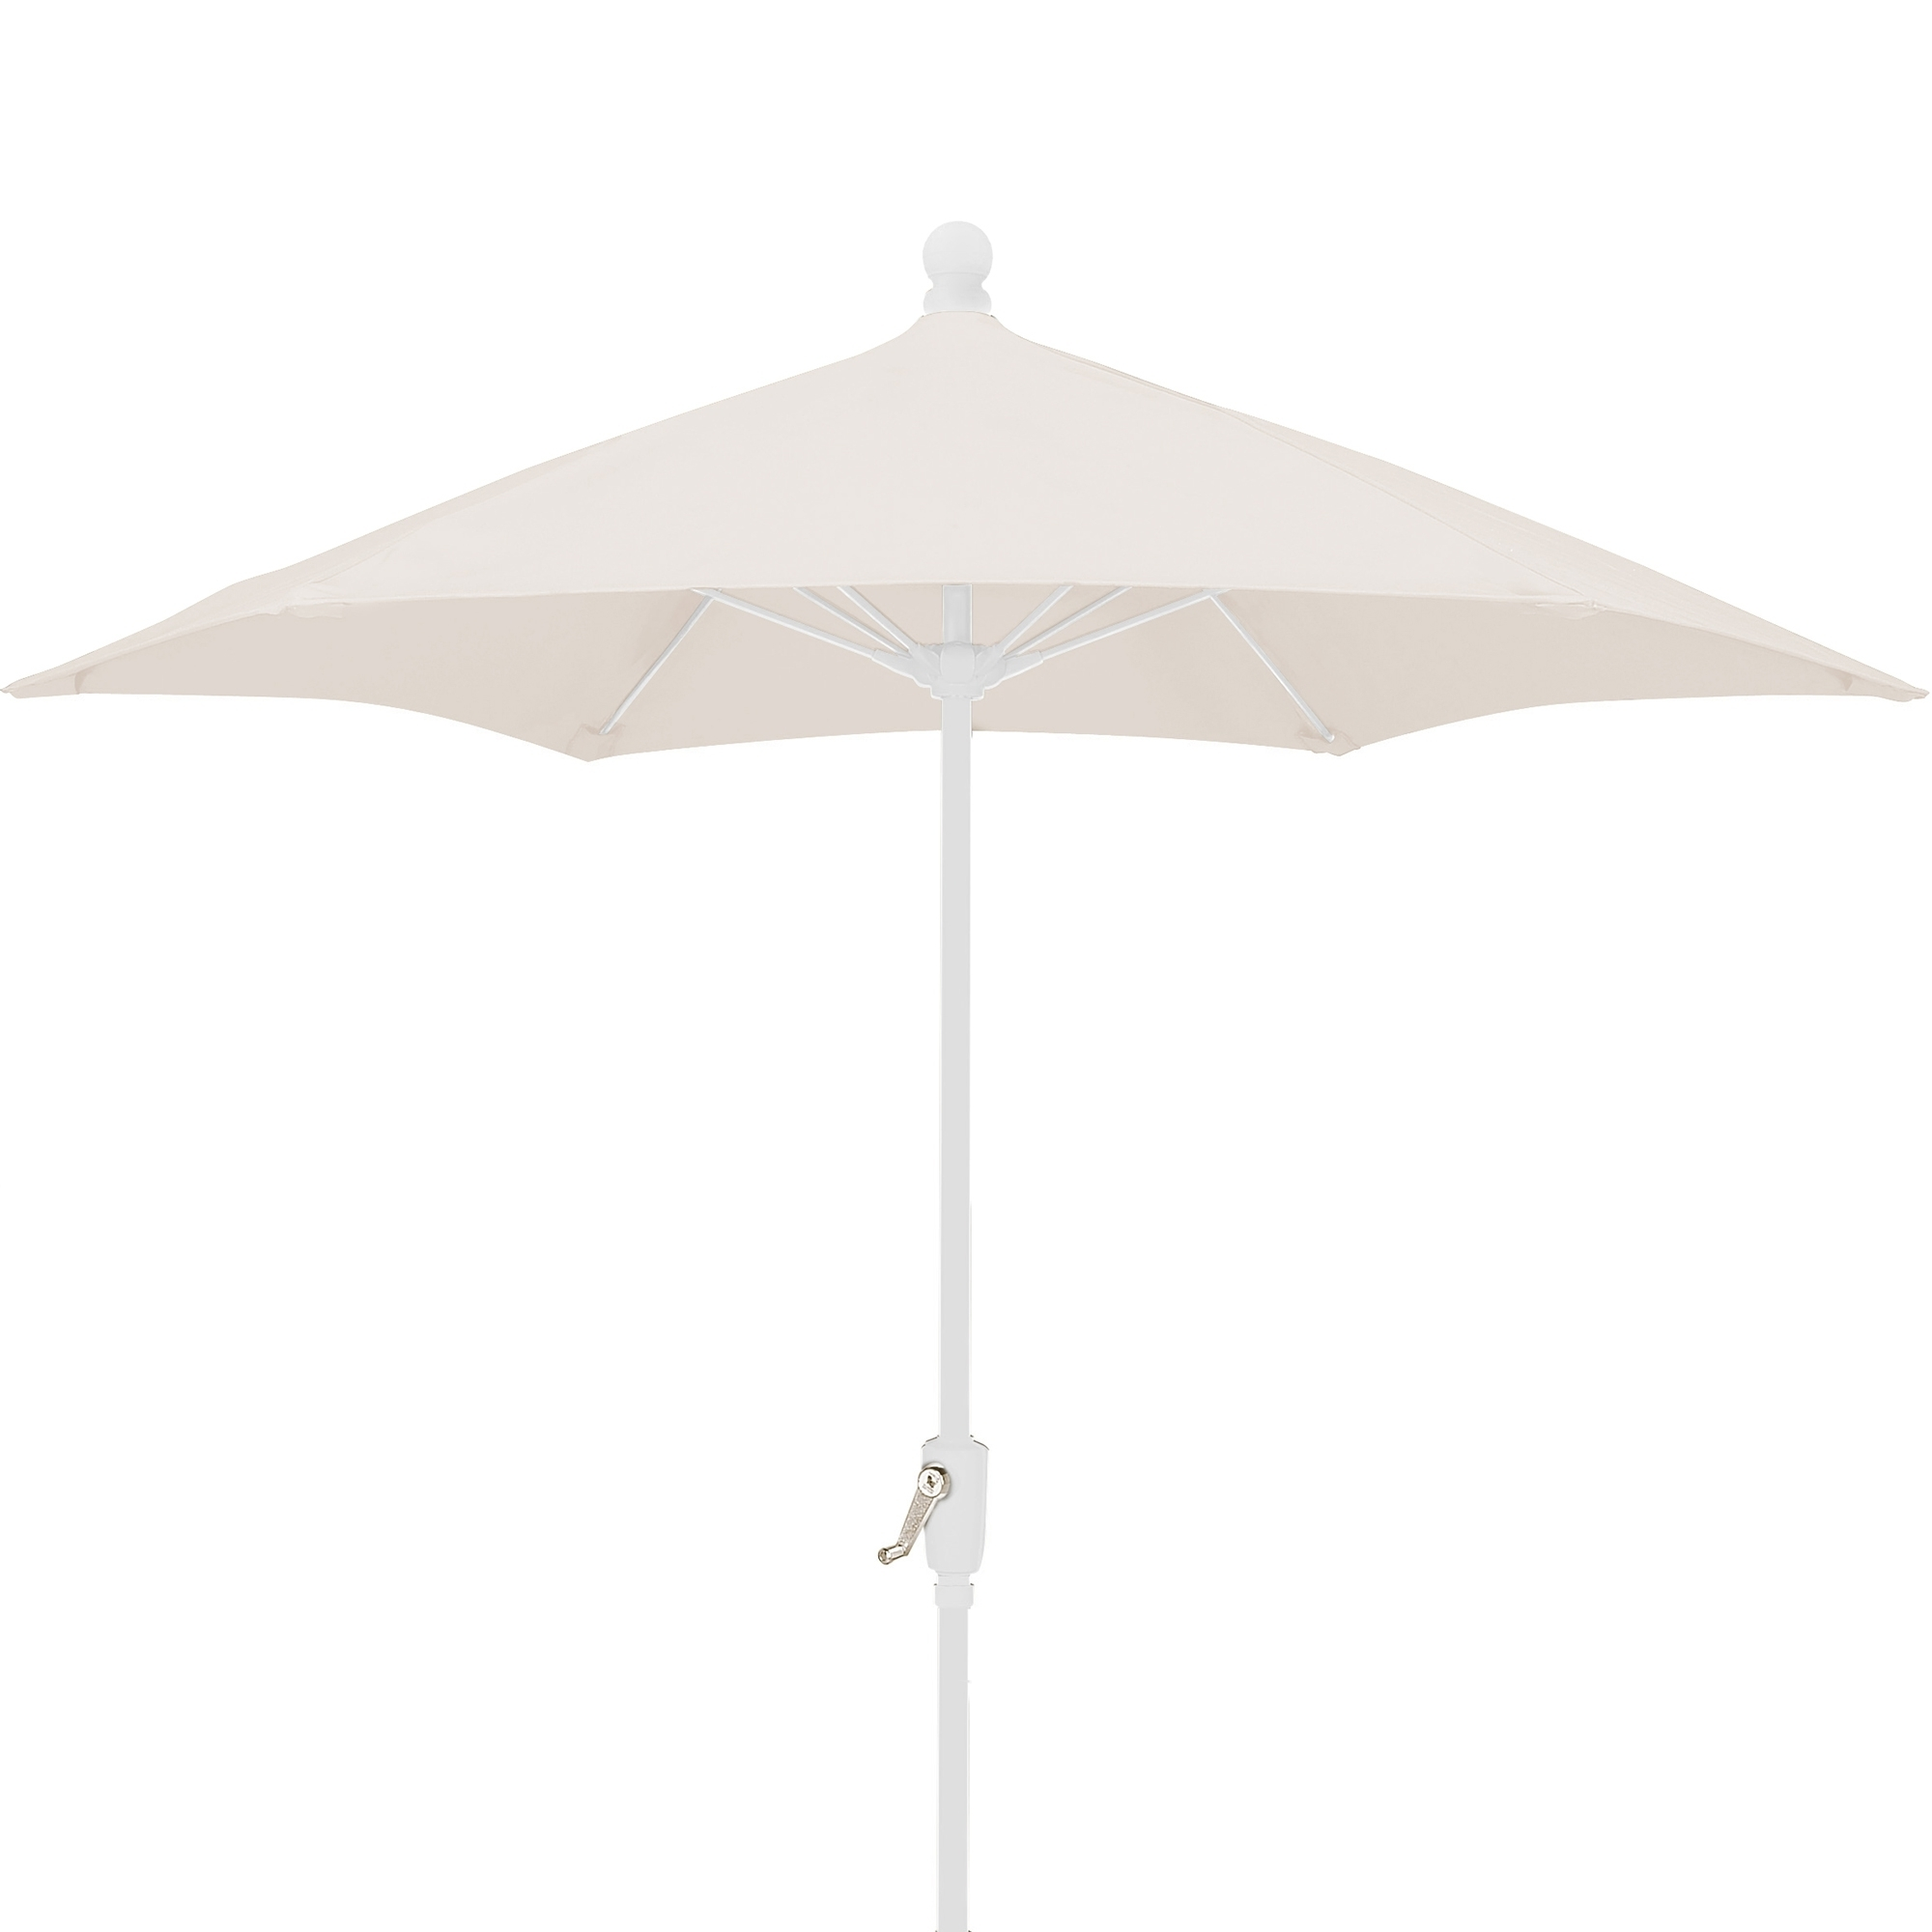 Preferred Patio Umbrellas With White Pole In (View 5 of 20)